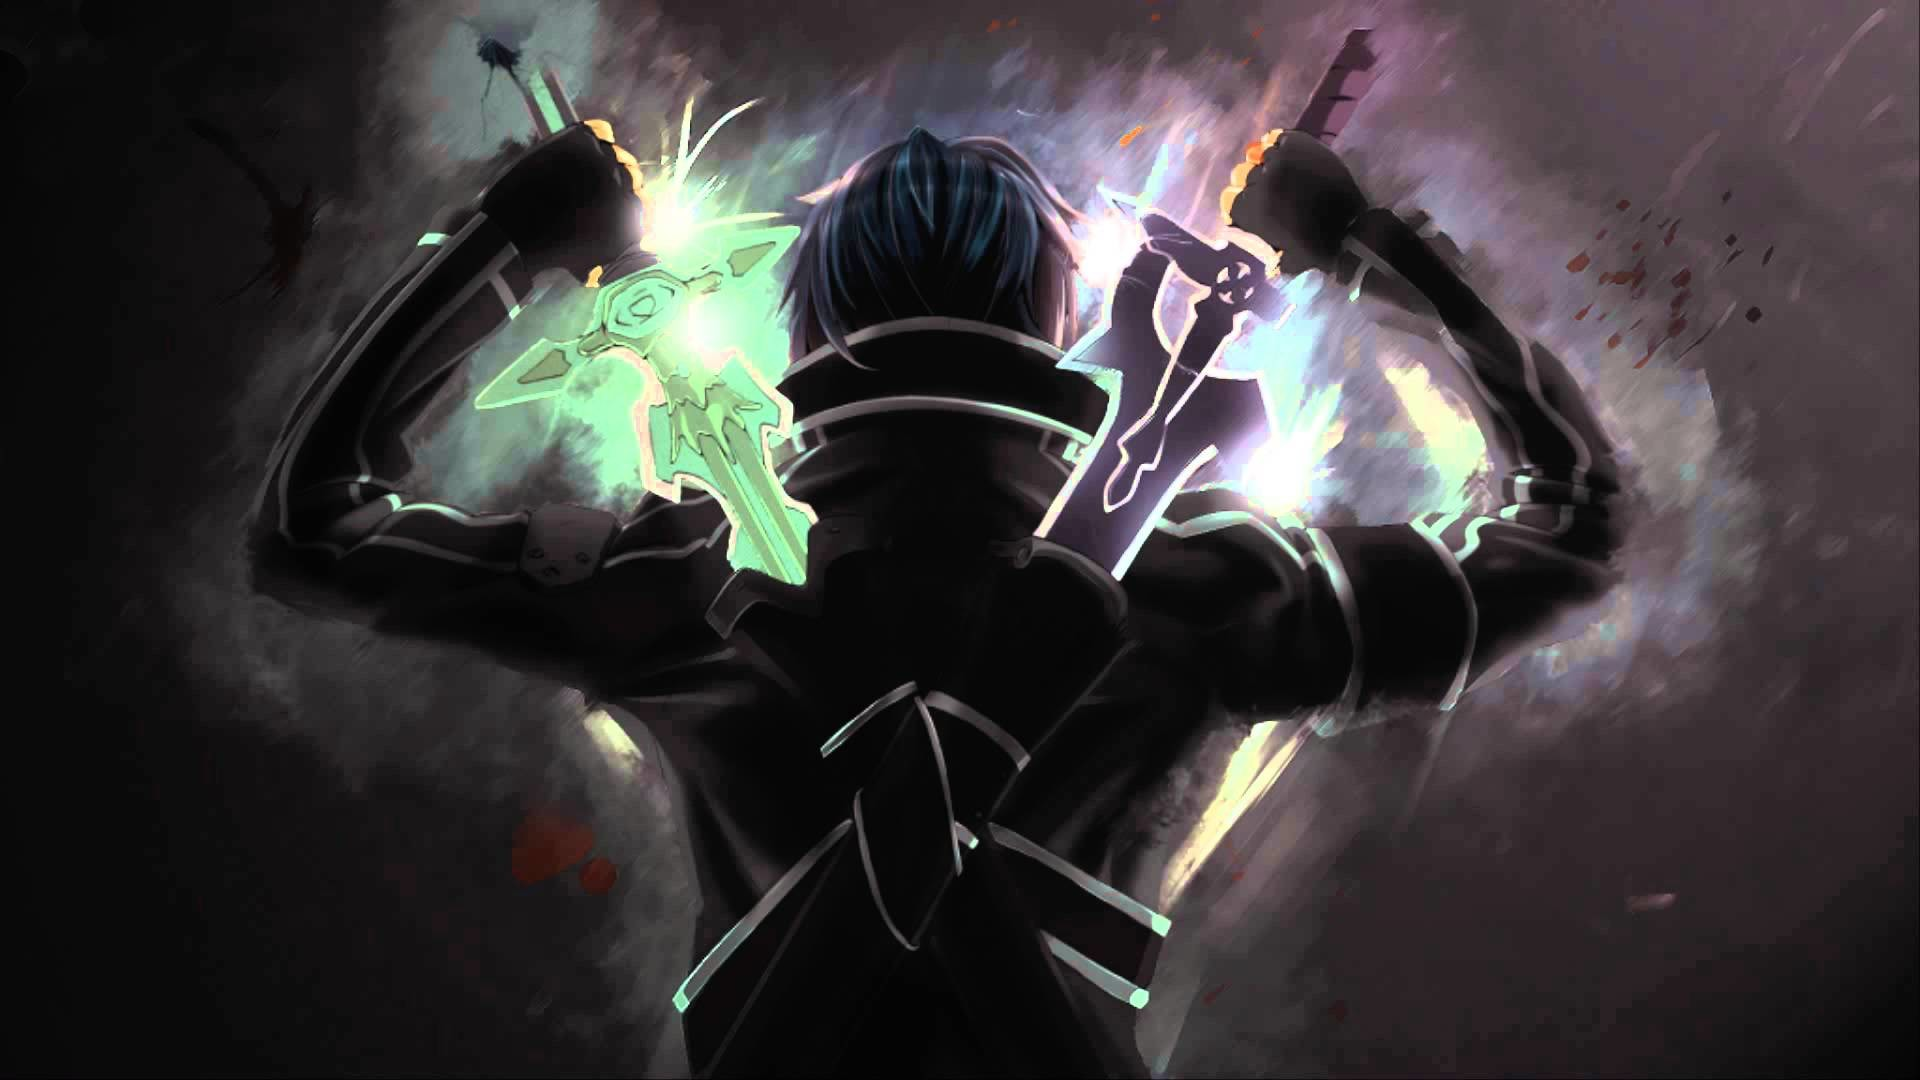 Res: 1920x1080, Epic Anime Fighting Wallpapers Images : Anime Wallpaper Arunnath Most Epic Anime  Wallpapers Images : Anime Wallpaper Arunnath Epic anime clipart ClipartFest  ...